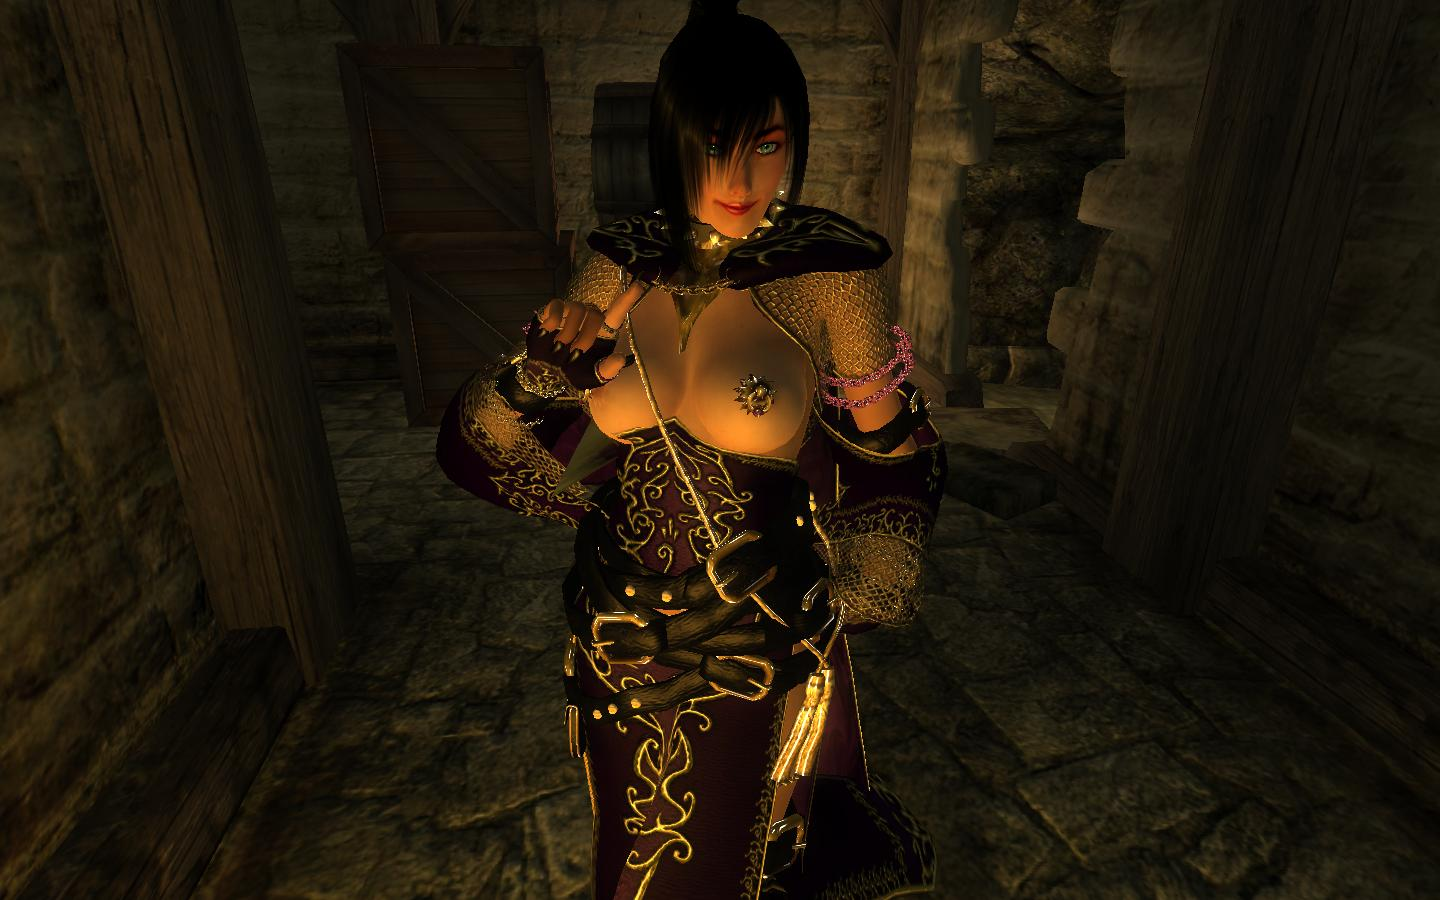 Oblivion nudity mod adult image